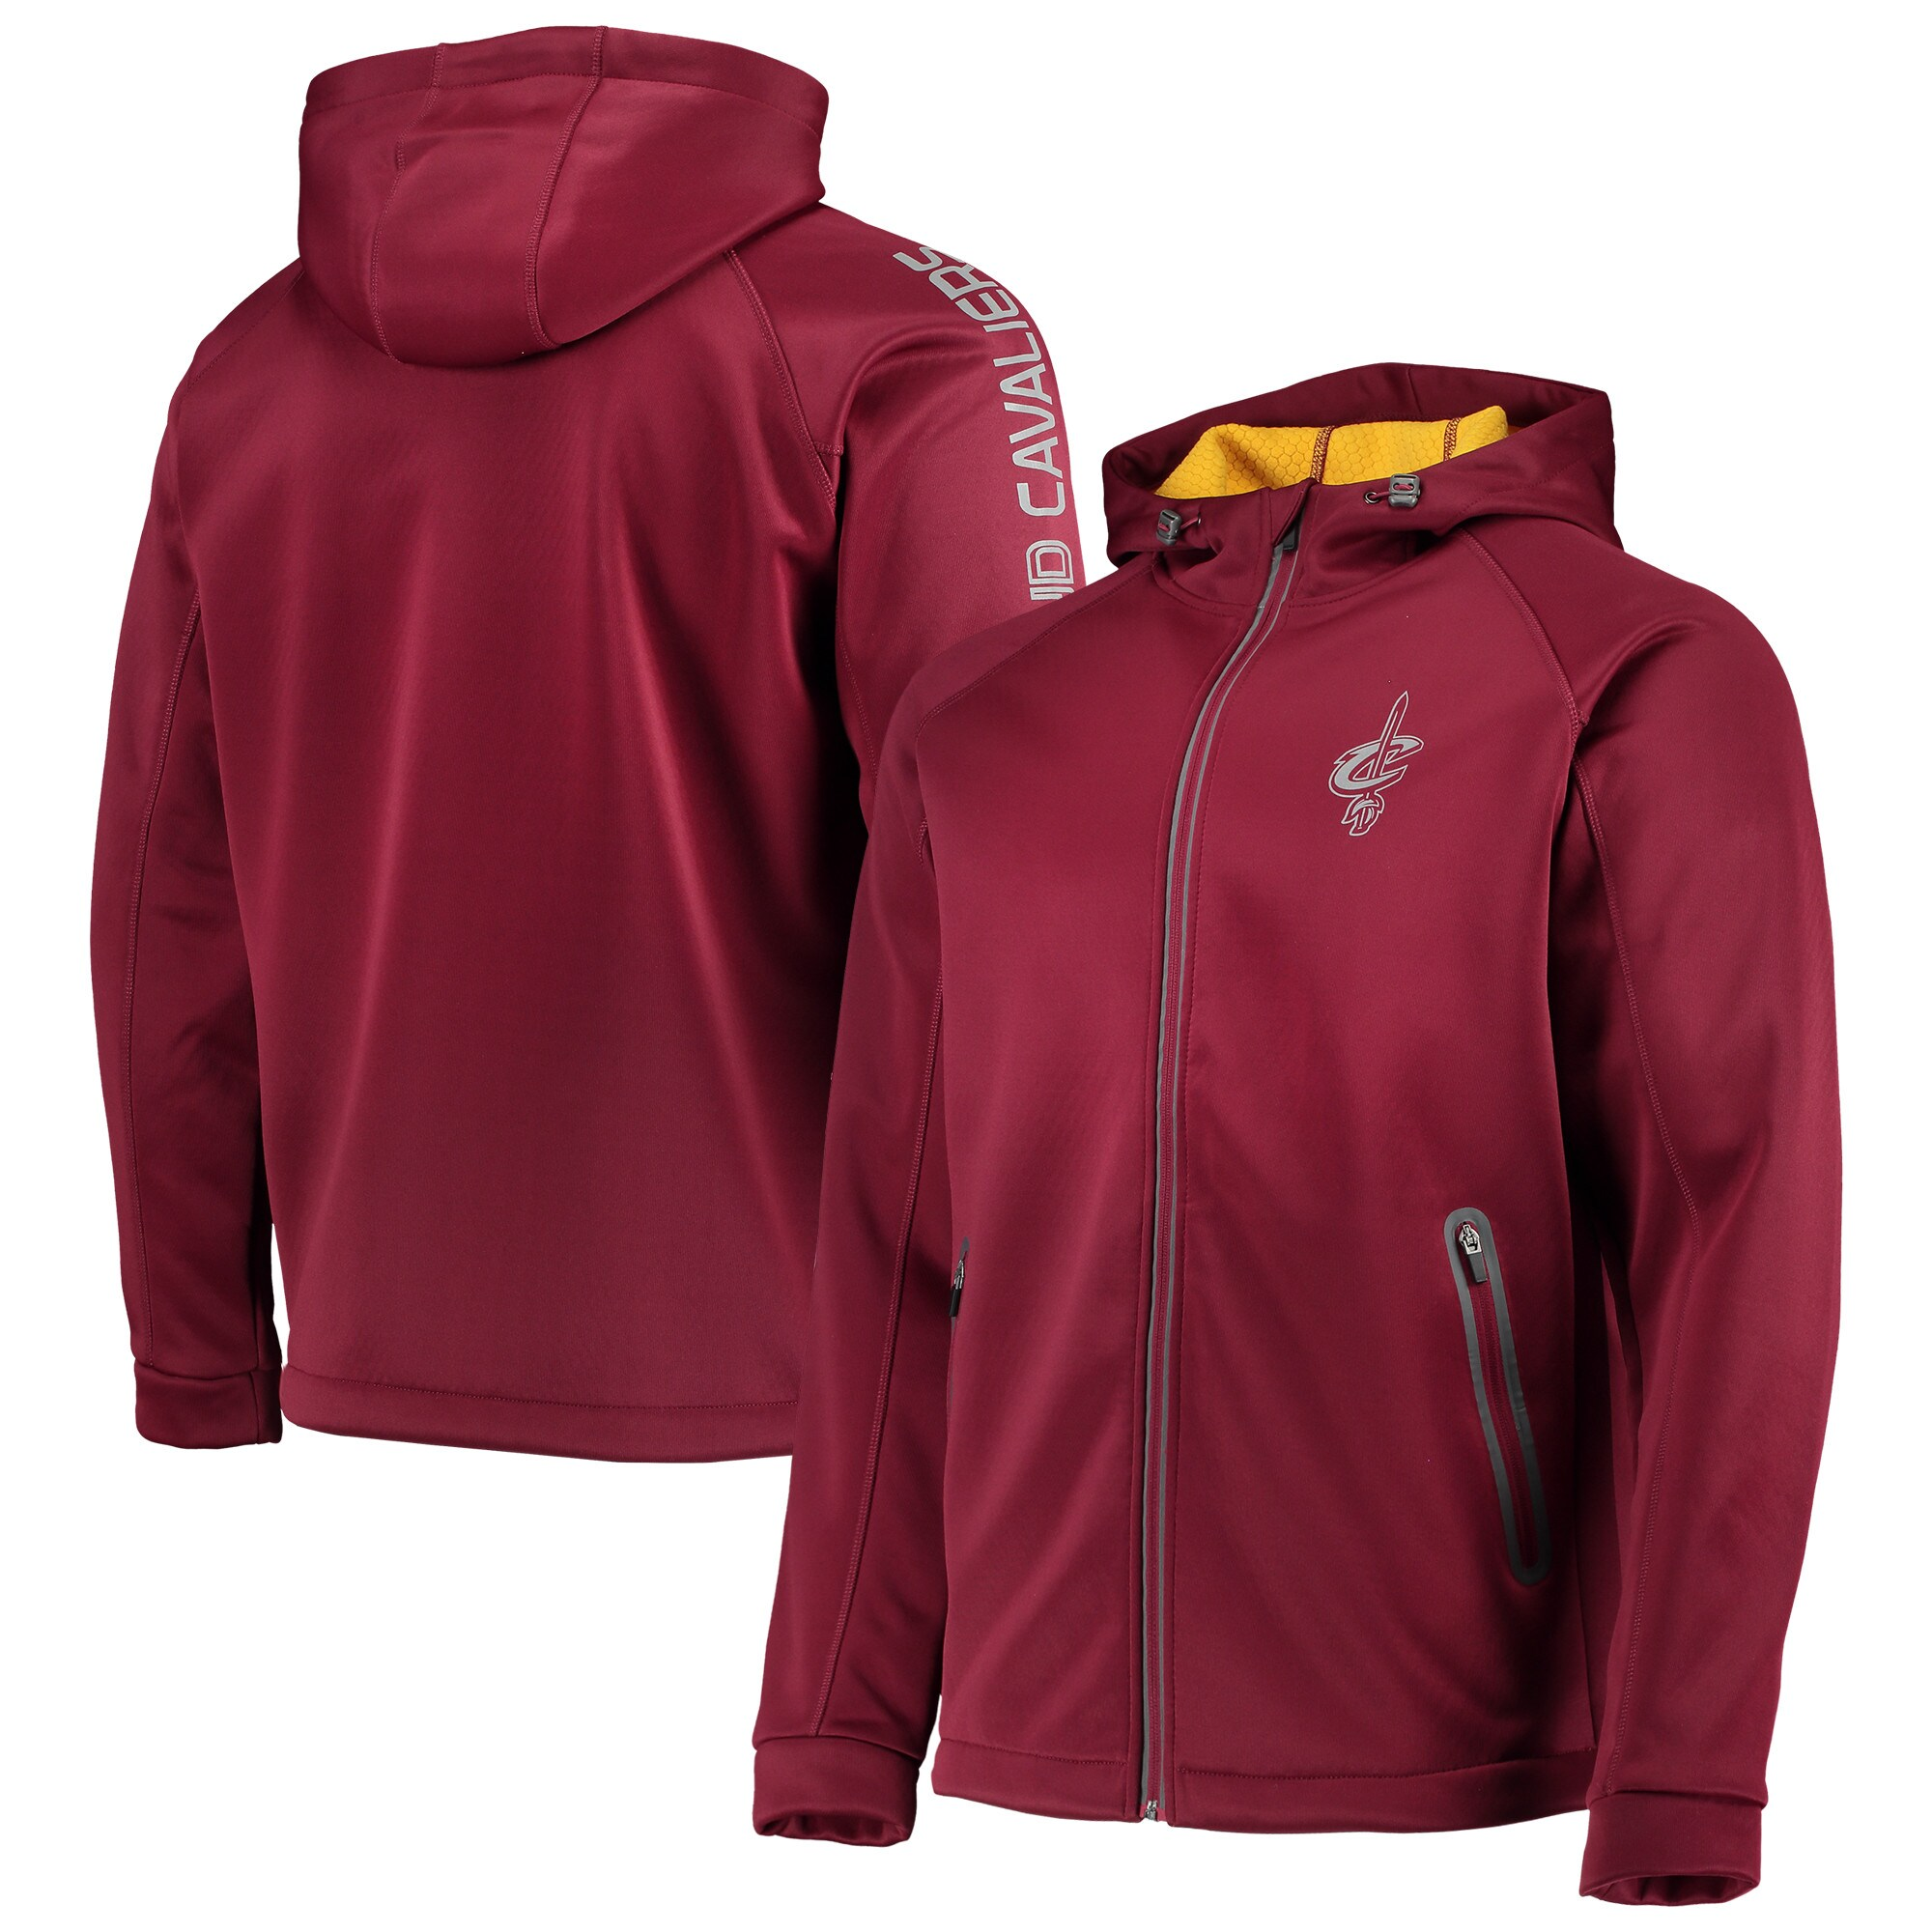 Cleveland Cavaliers G-III Sports by Carl Banks Motion Full-Zip Jacket - Wine